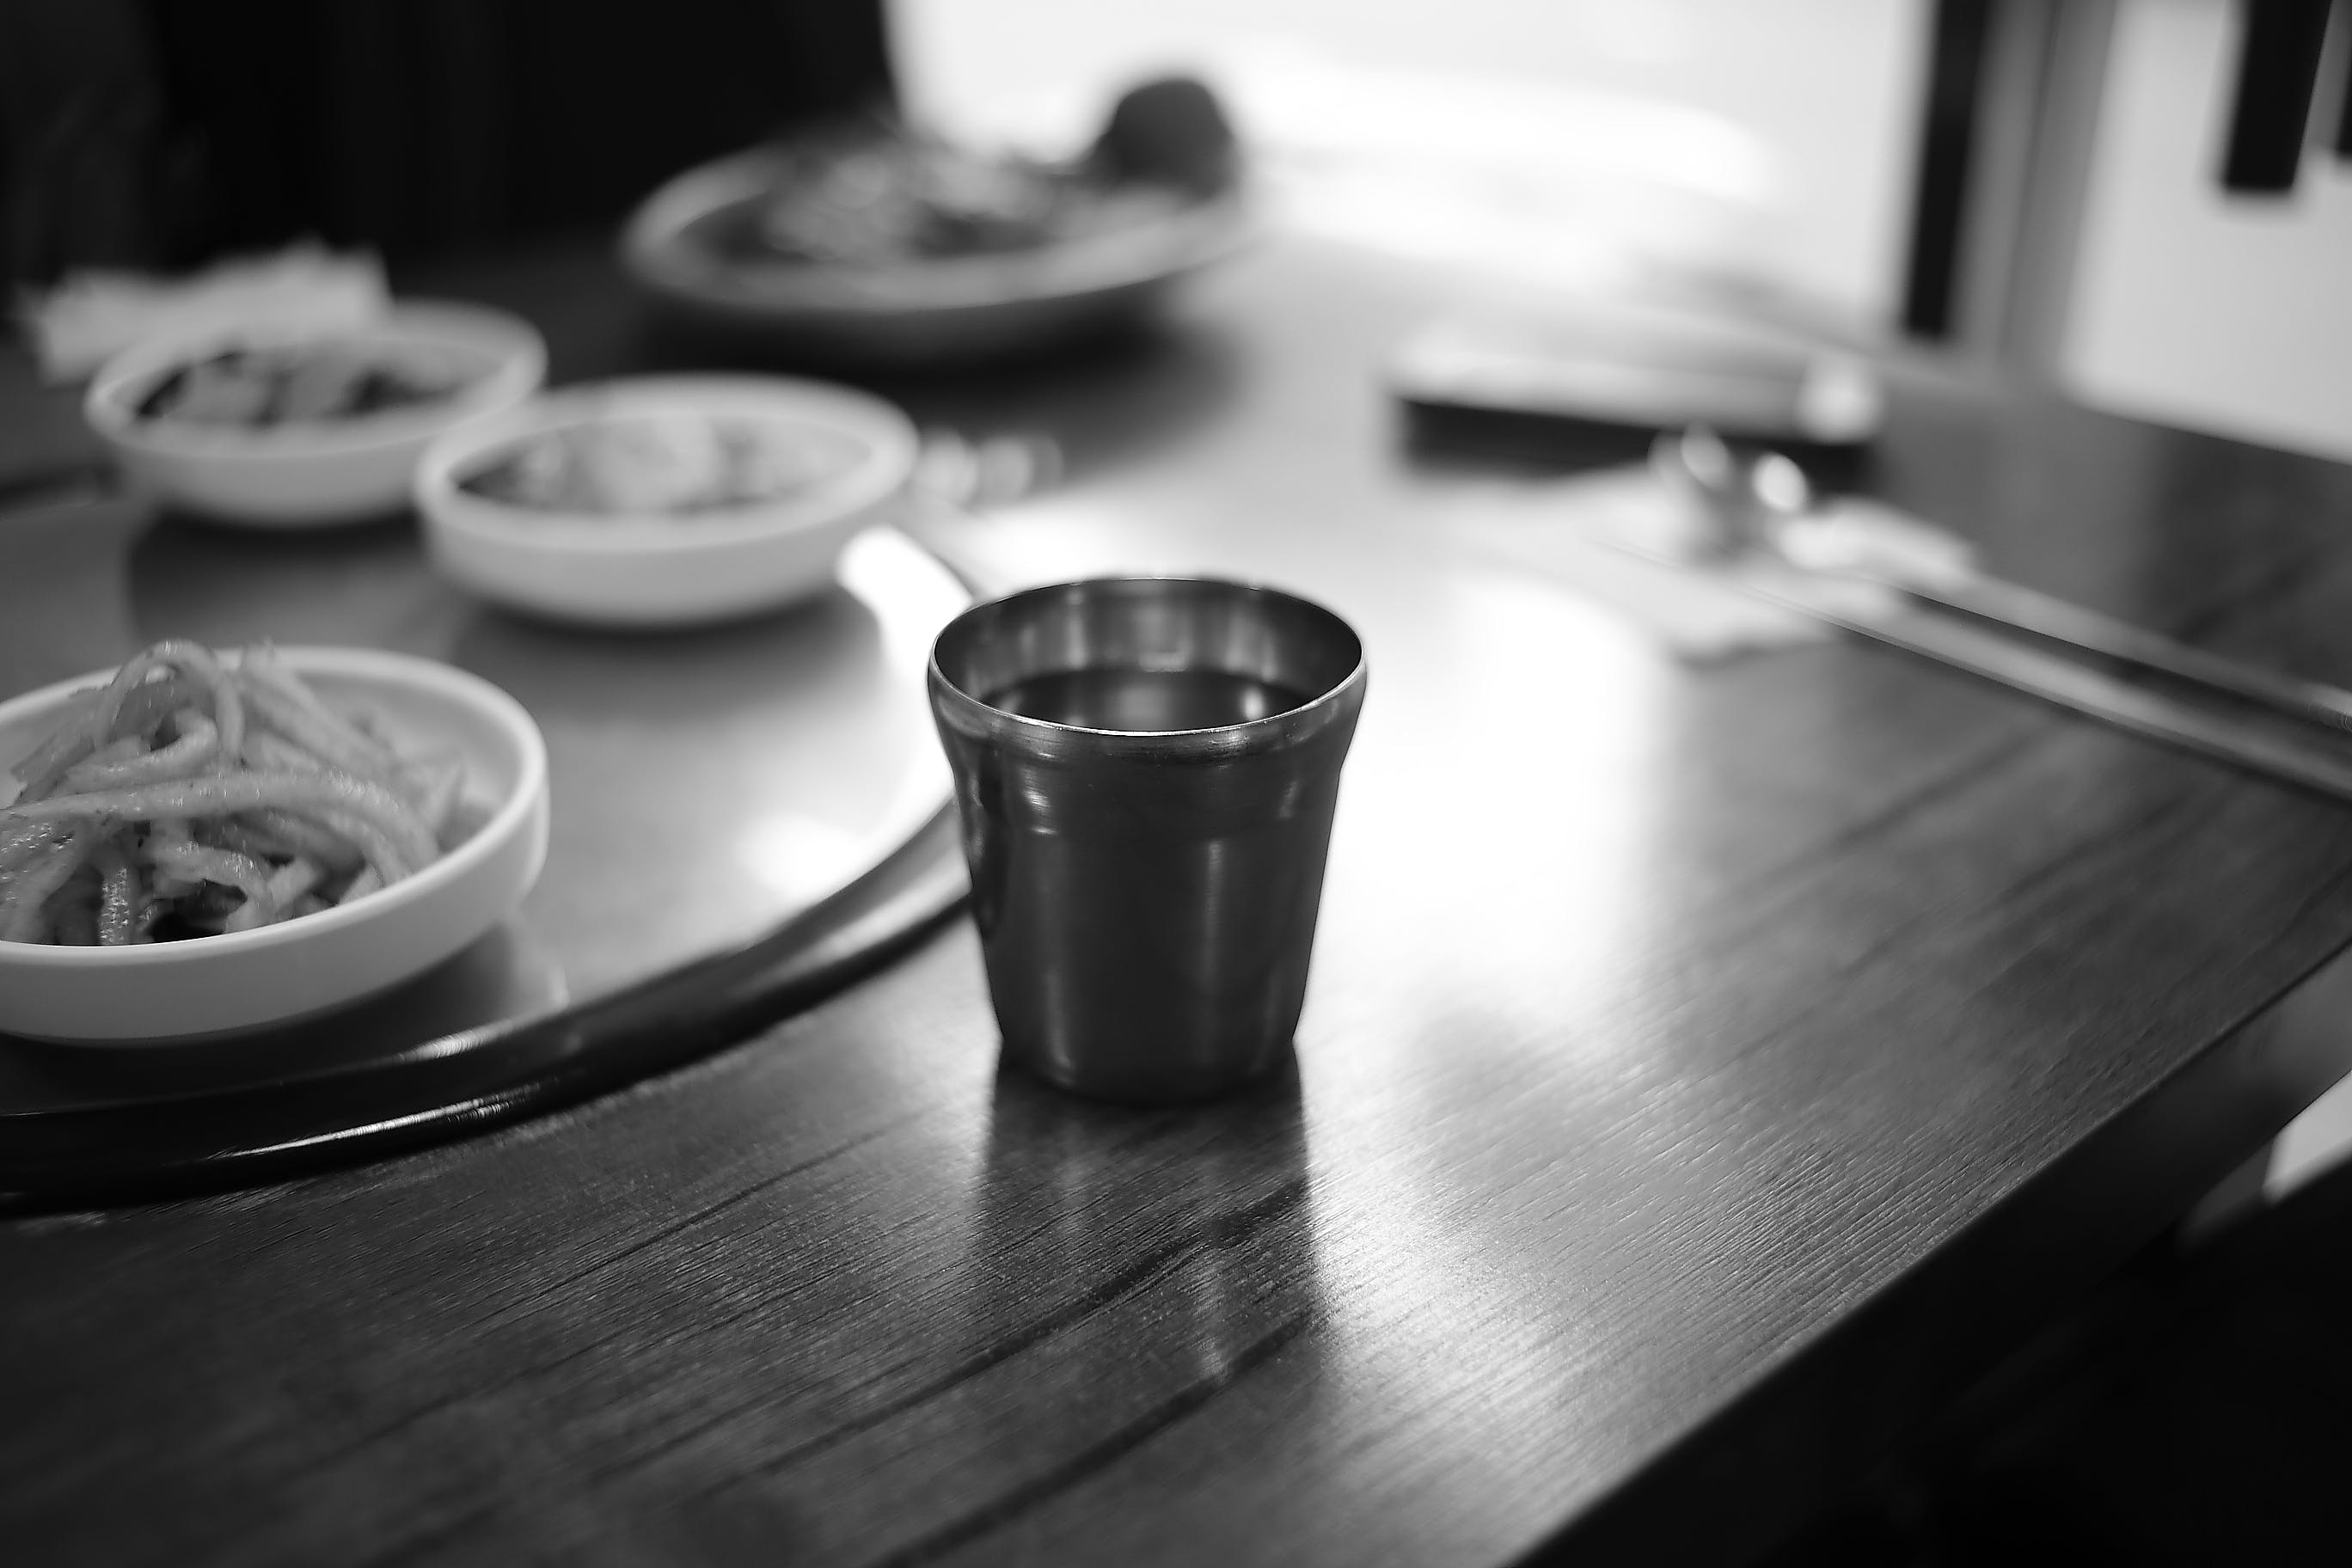 Stainless Steel Cup on Brown Wooden Top Table